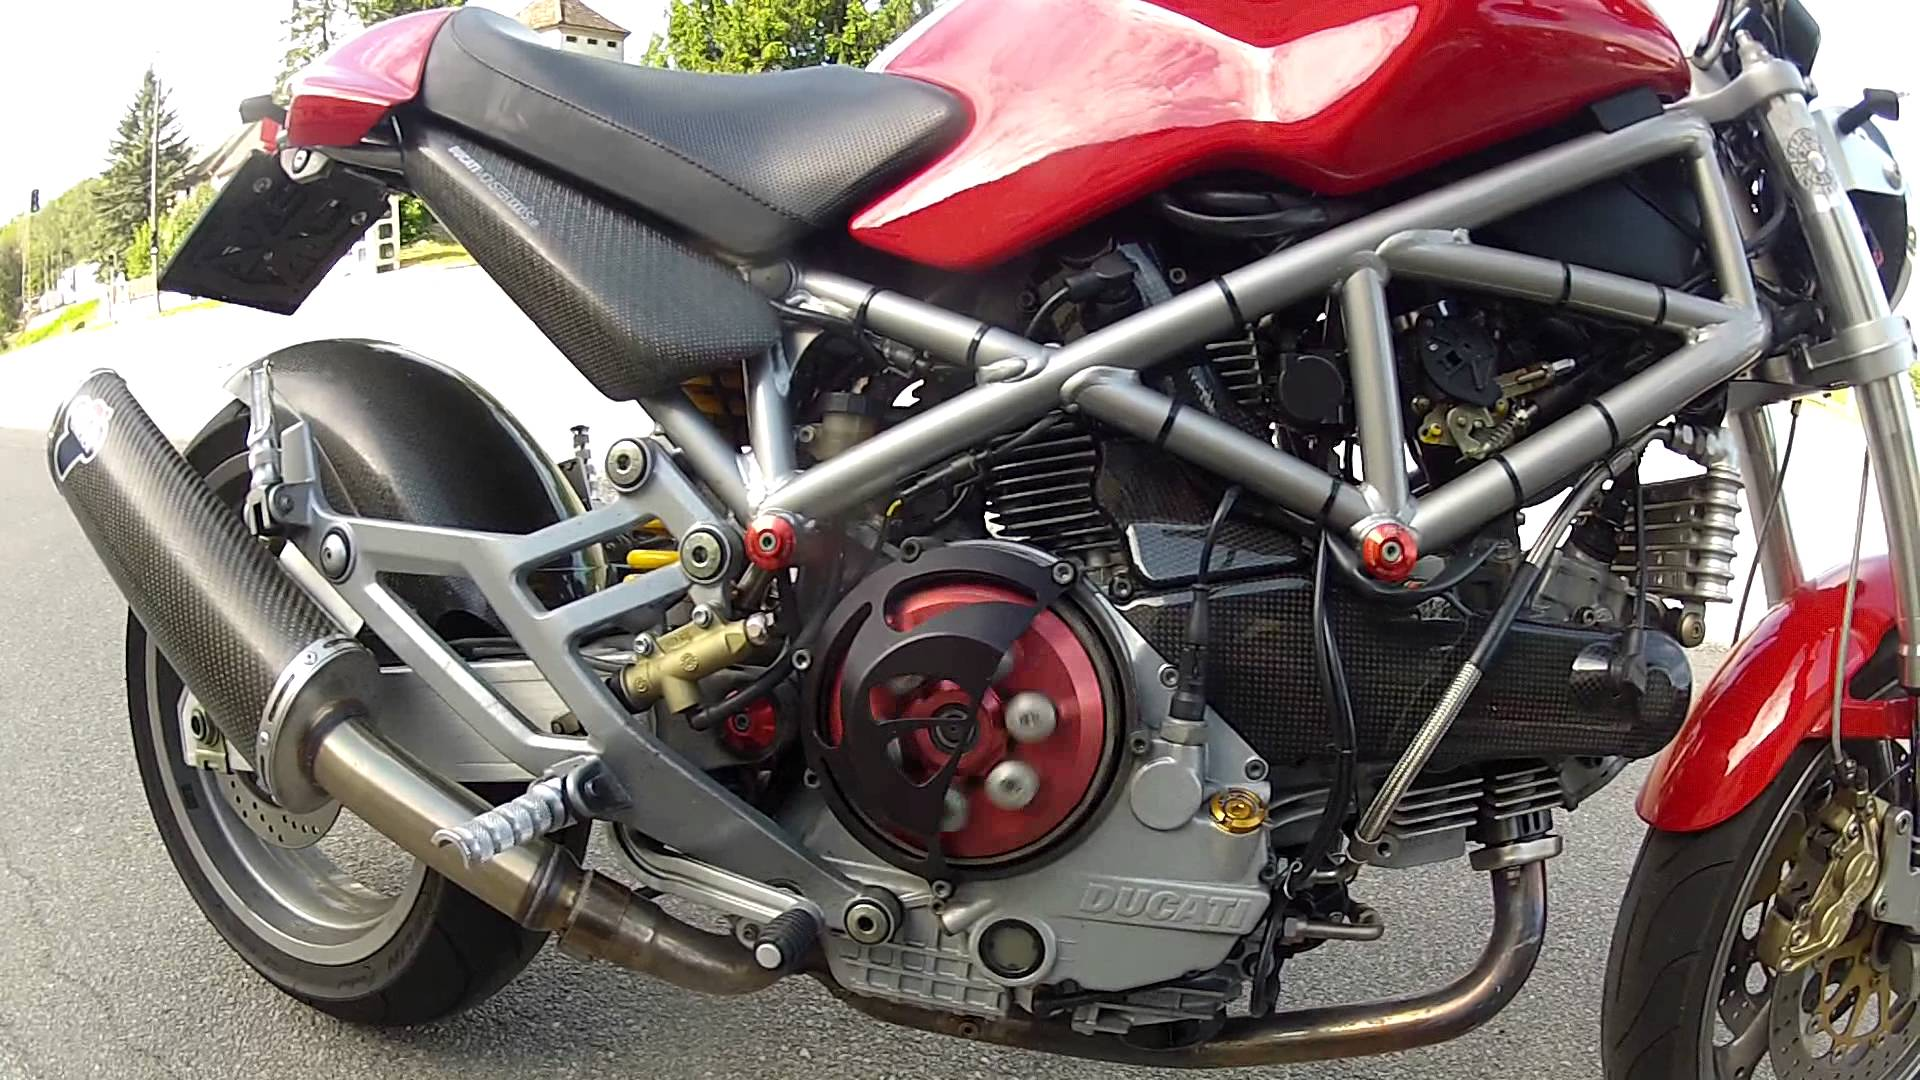 Ducati Monster 1000 S 2003 wallpapers #11327